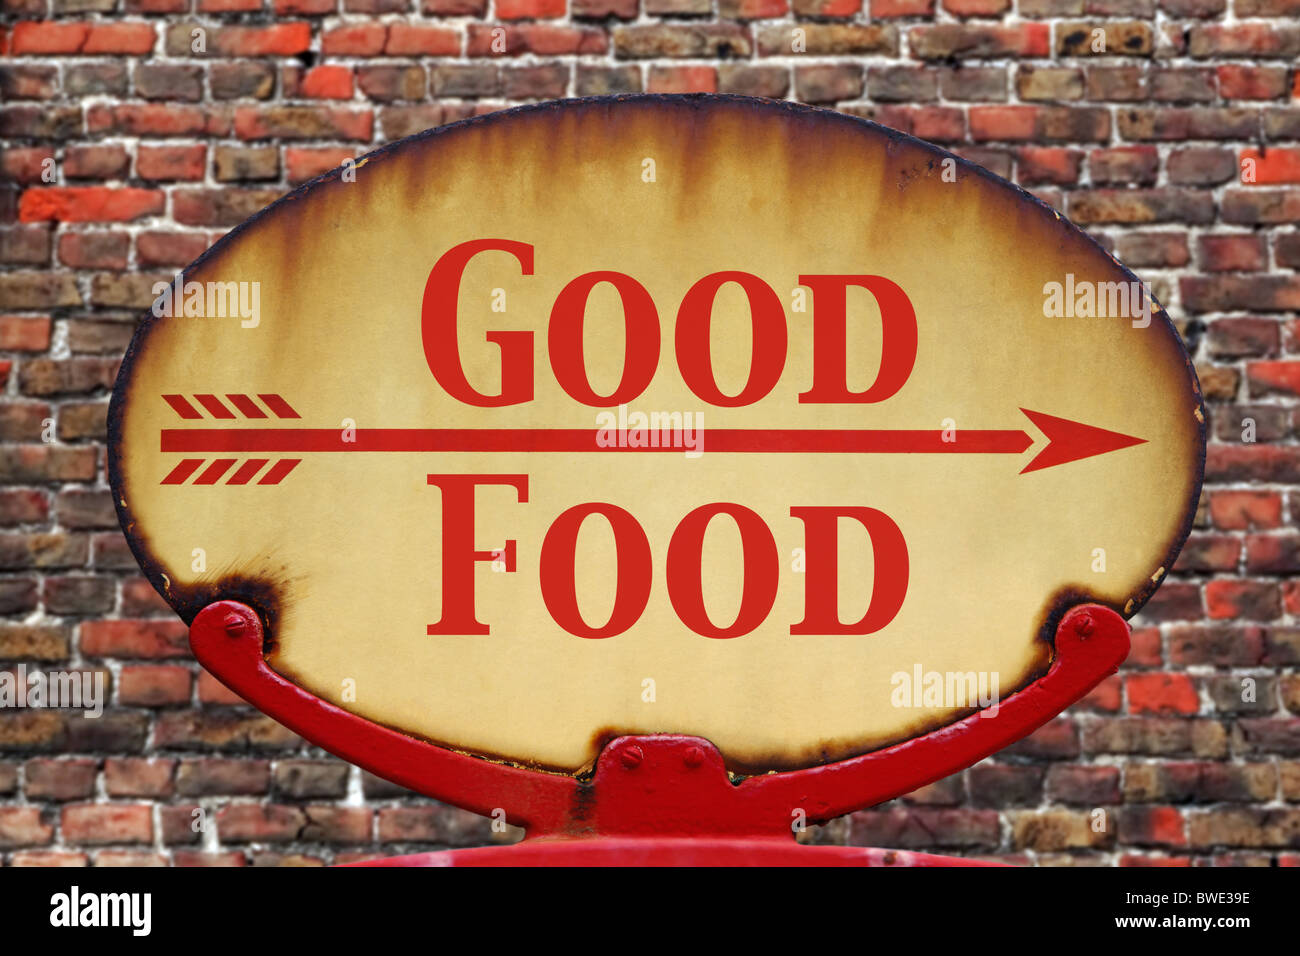 A rusty old retro arrow sign with the text Good Food - Stock Image